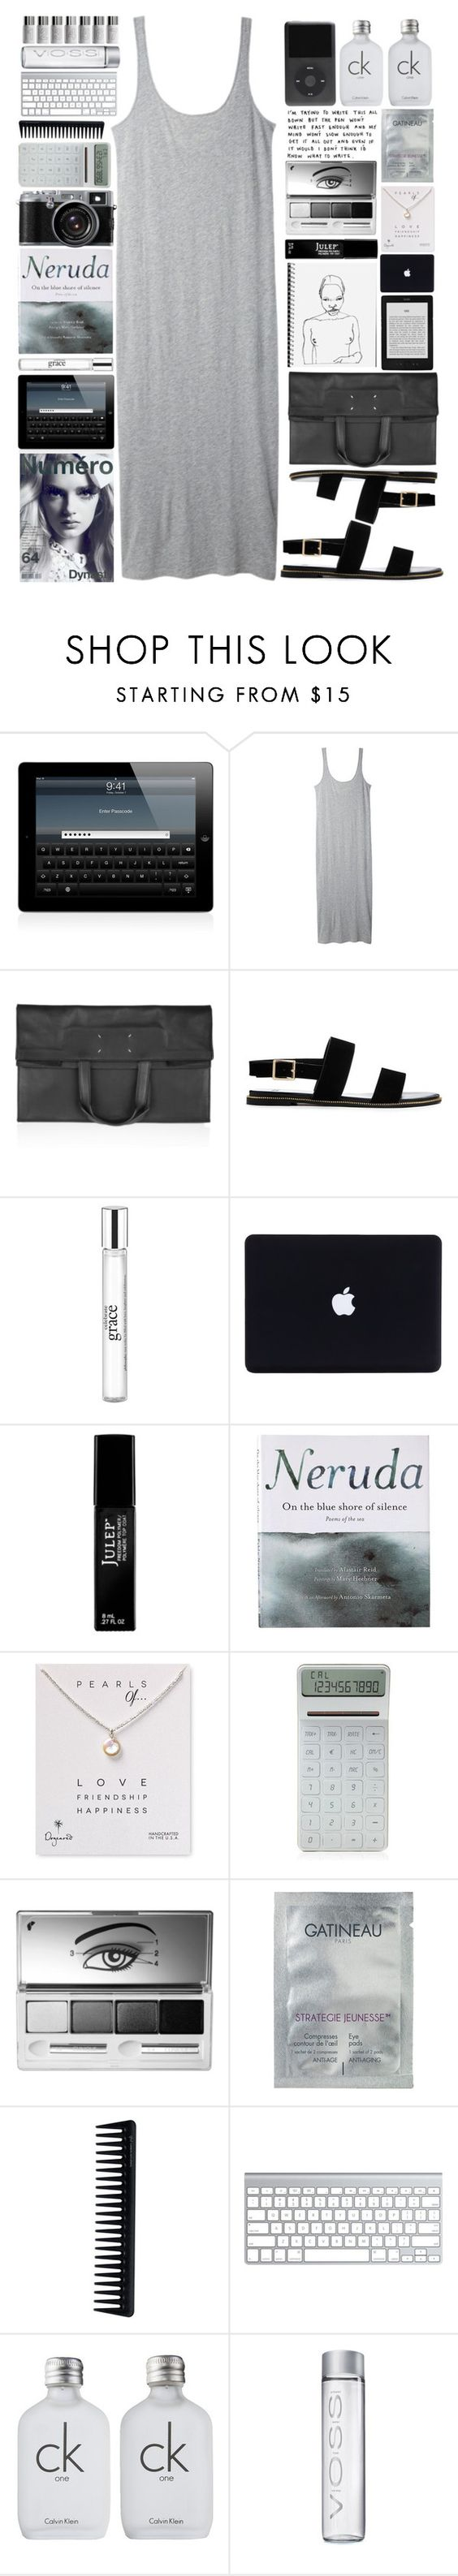 """""""Untitled #1471"""" by tacoxcat ❤ liked on Polyvore featuring Maison Margiela, ASOS, philosophy, Julep, Patagonia, Dogeared, LEXON, Clinique, Gatineau and GHD"""